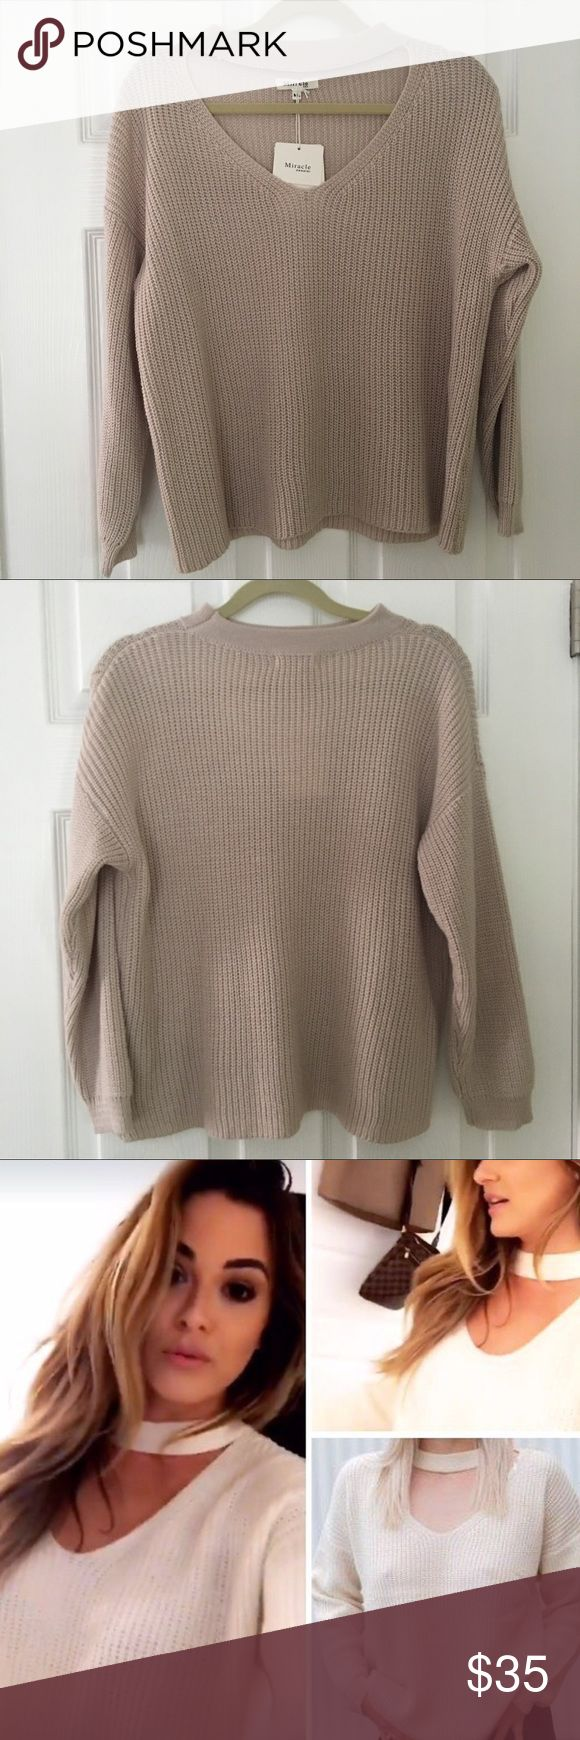 "Knit Choker Sweater Brand new with tags. Brand is ""Miracle USA"". Purchased from Jojo Fletcher's collection with Ooh La Luxe boutique. Marked as Brandy Melville for more visibility! Brandy Melville Sweaters Crew & Scoop Necks"